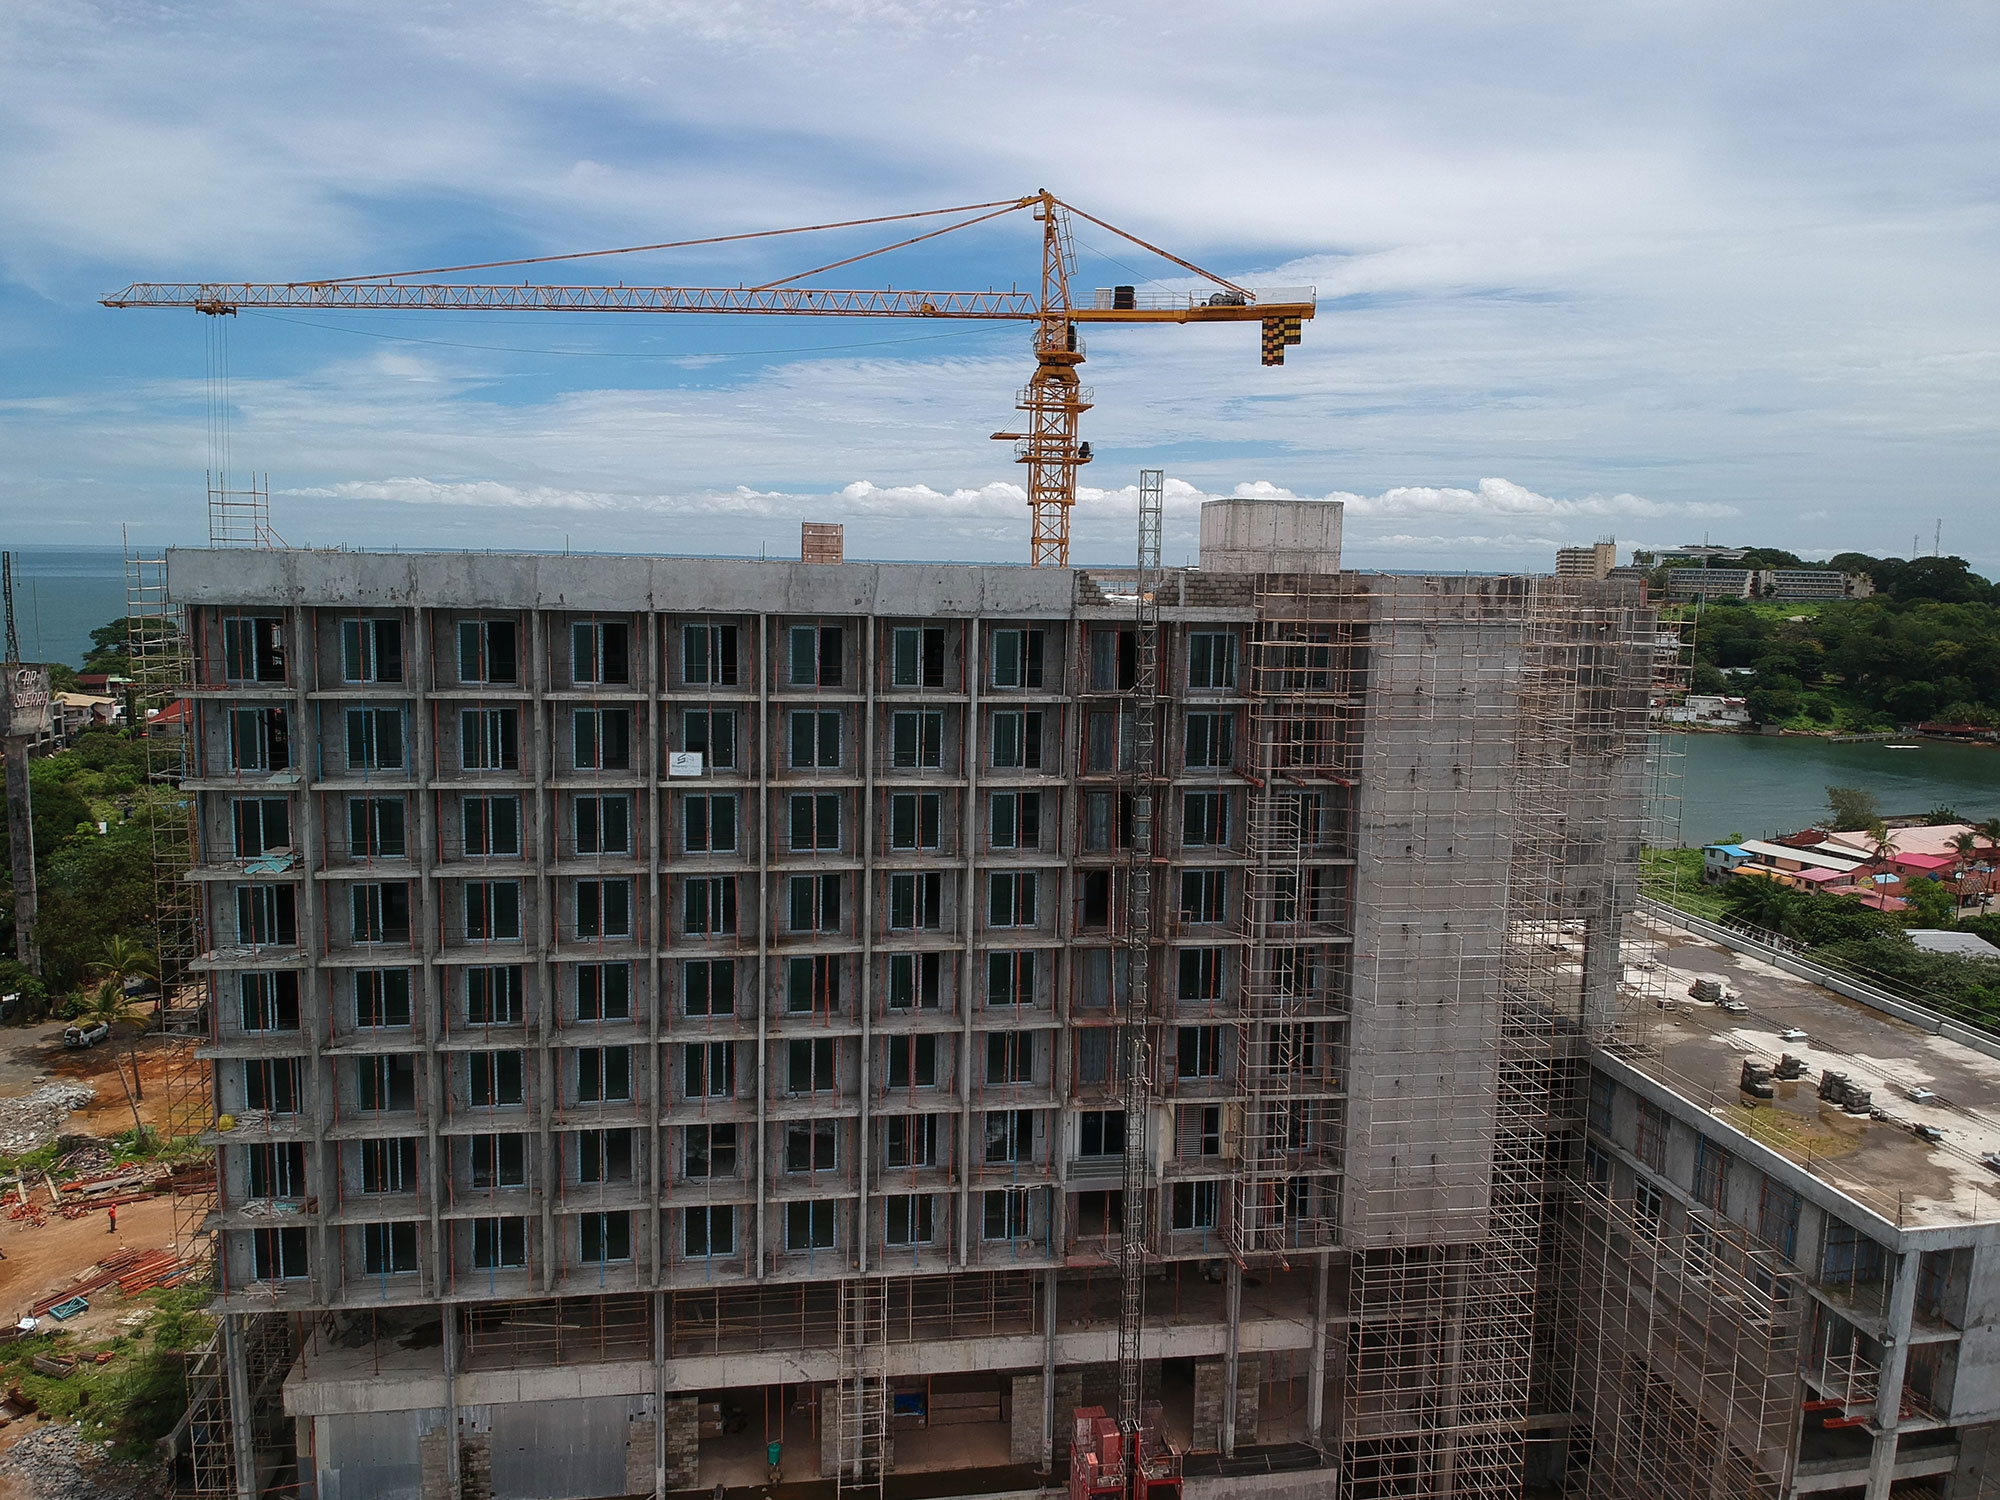 Cape Sierra Hilton Hotel under construction at Free Town, Sierra Leone